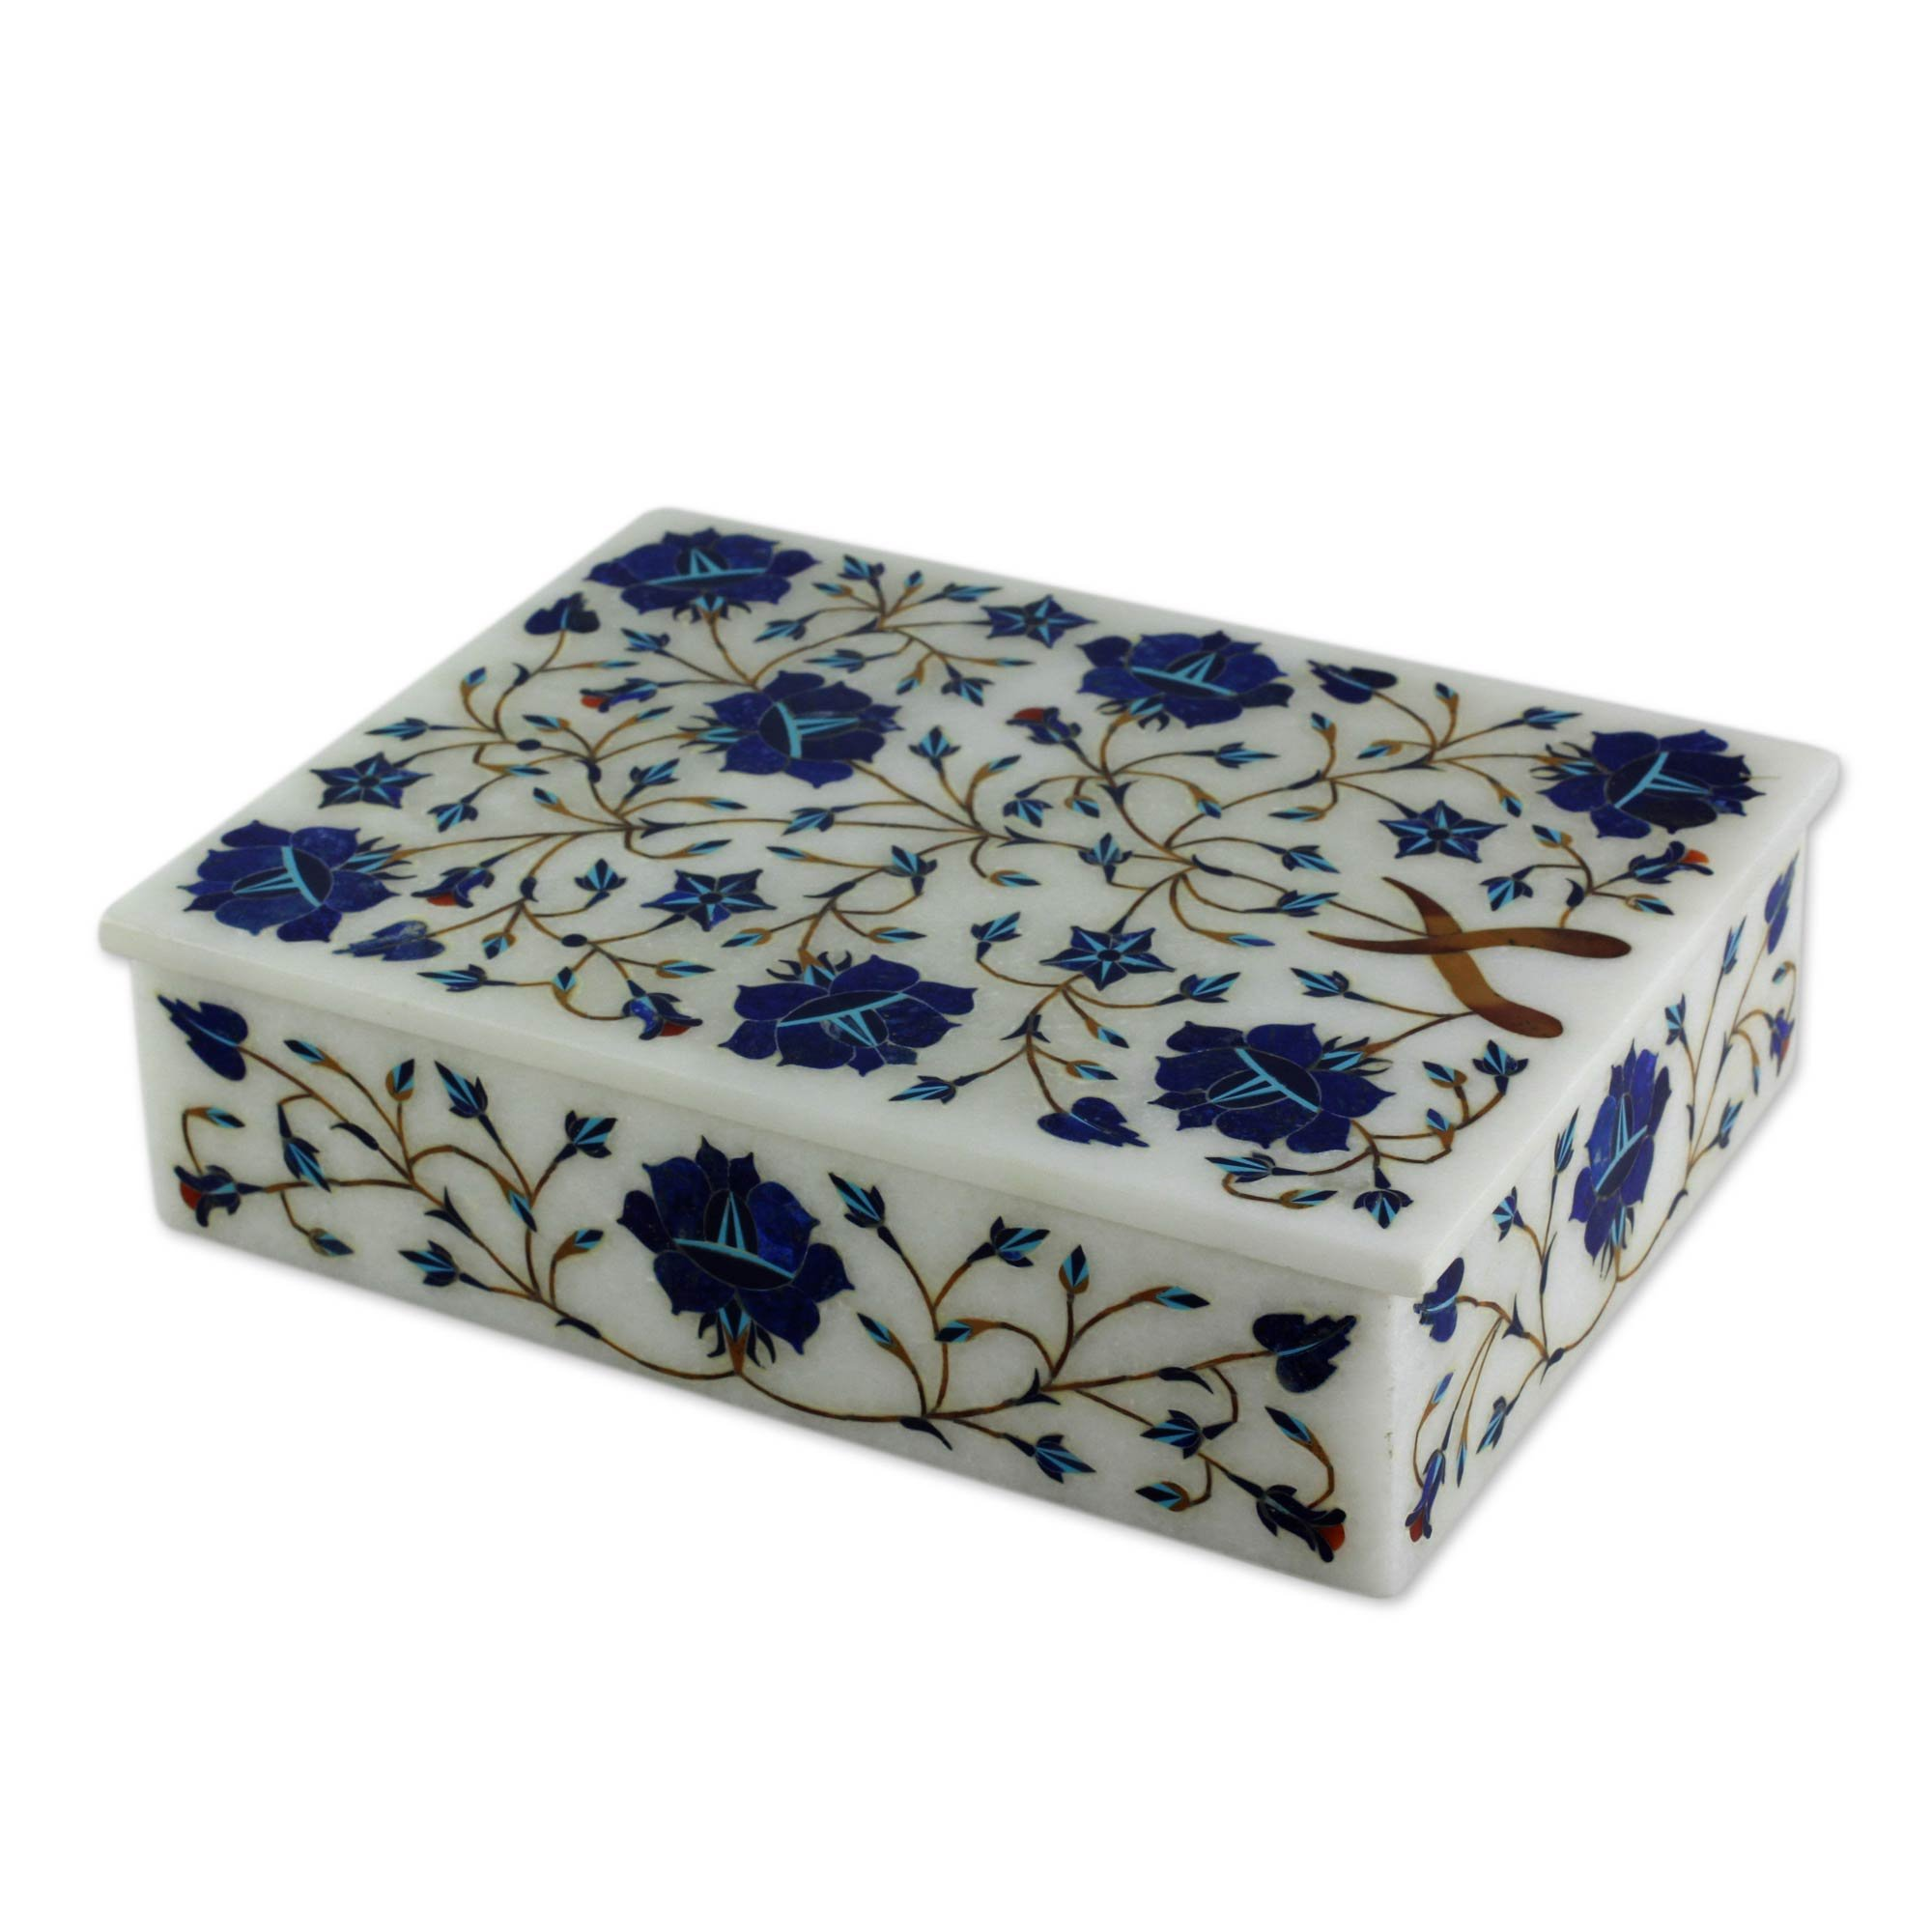 NOVICA Marble inlay jewelry box, Blue Forget Me Nots